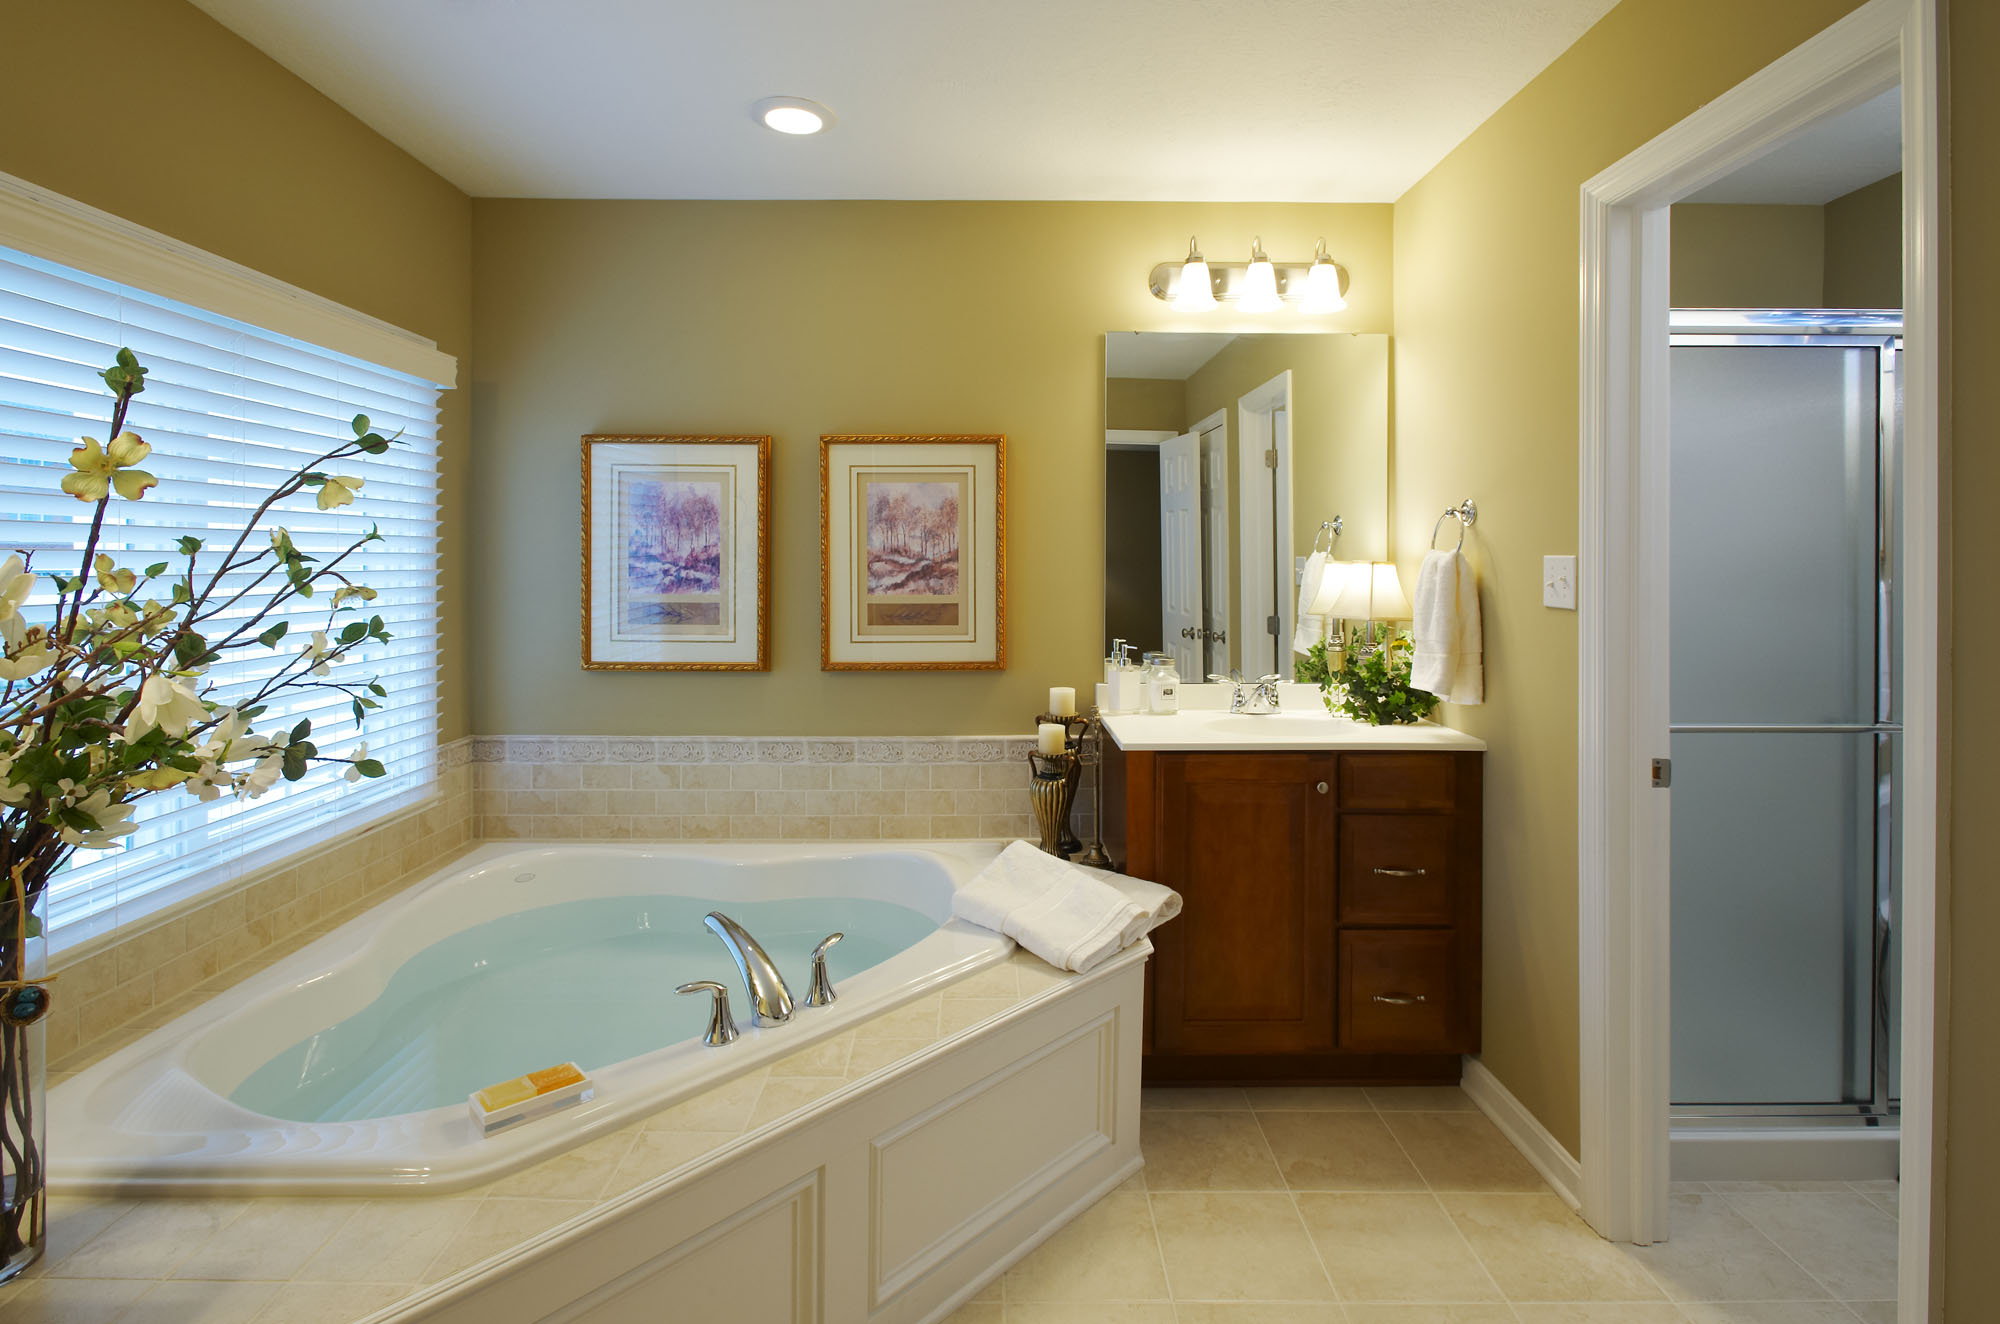 Model Home Bathroom Pictures 17 Varities Of Looking Your